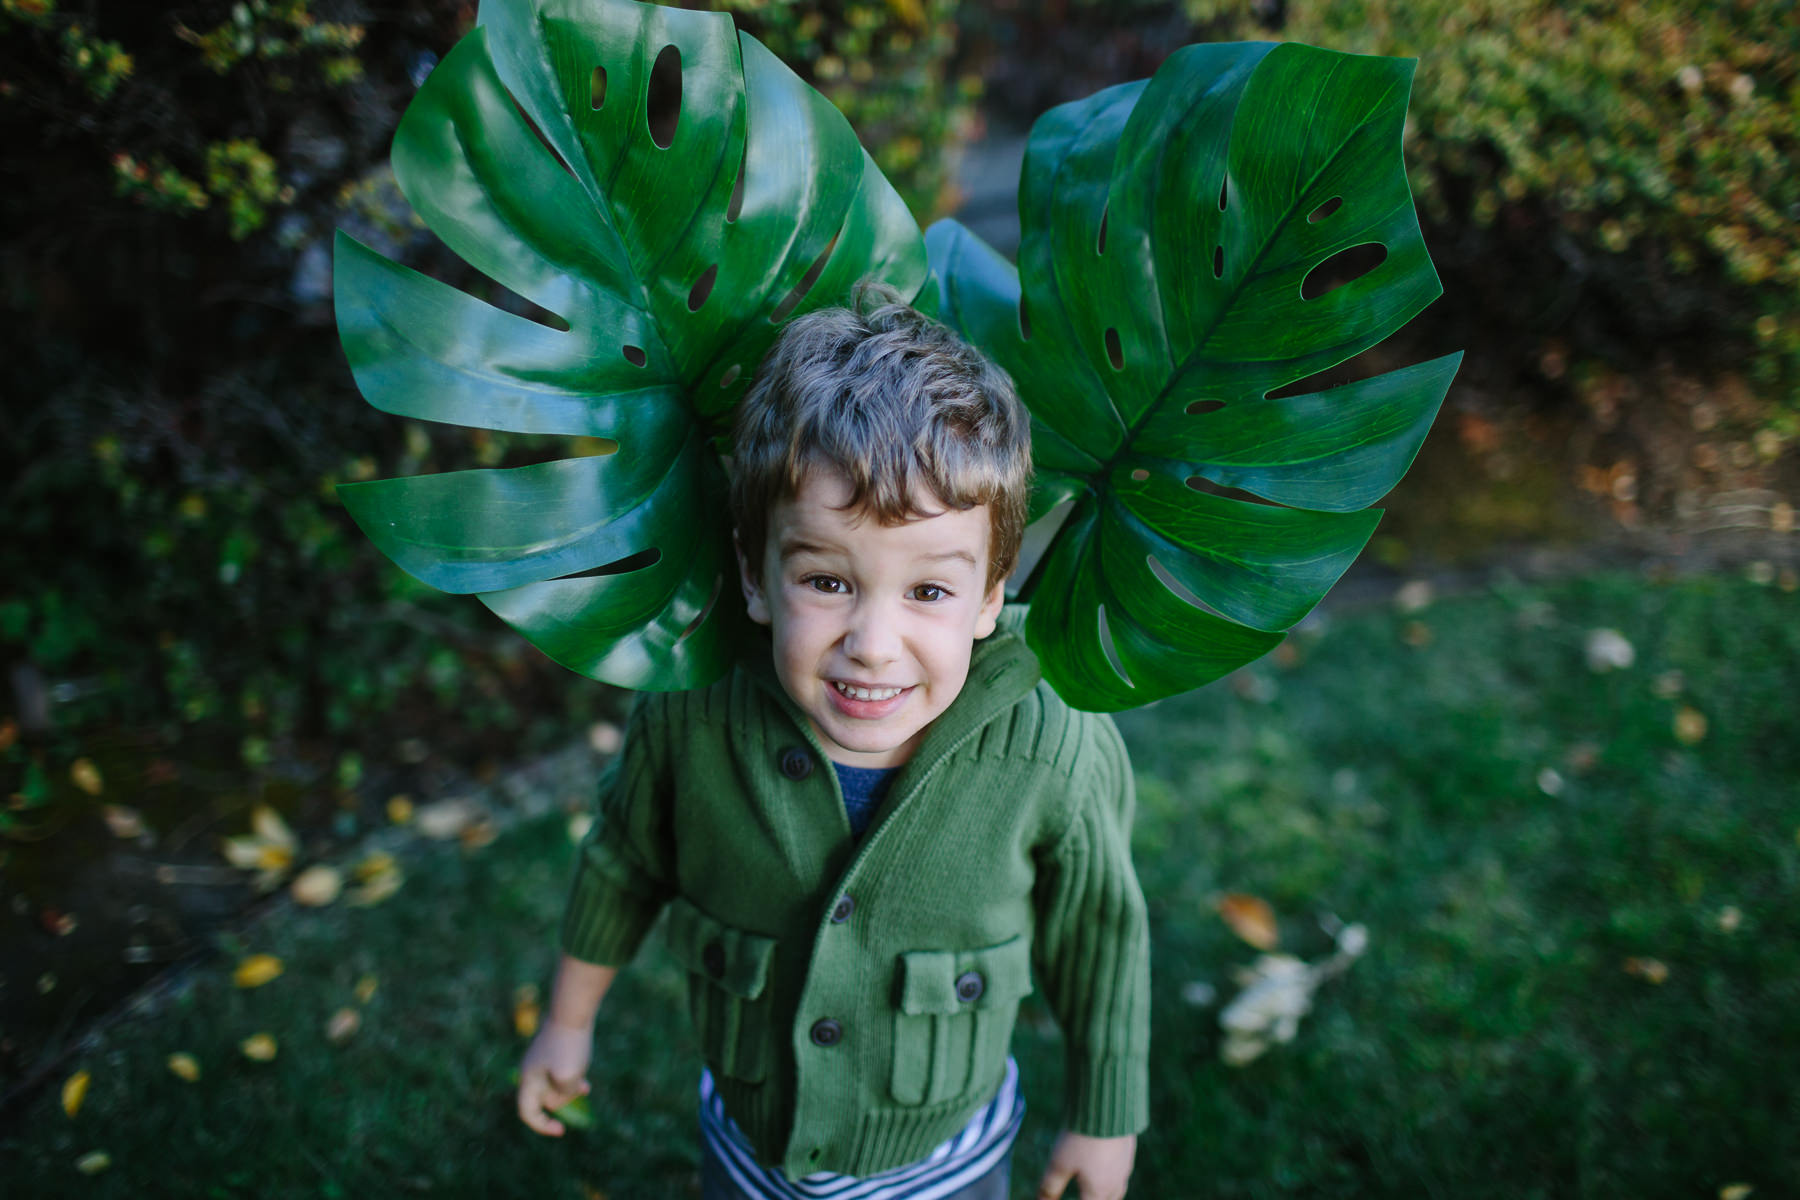 the-curiosity-project-blog-halloween-plant-lady-costumes (9 of 13).jpg